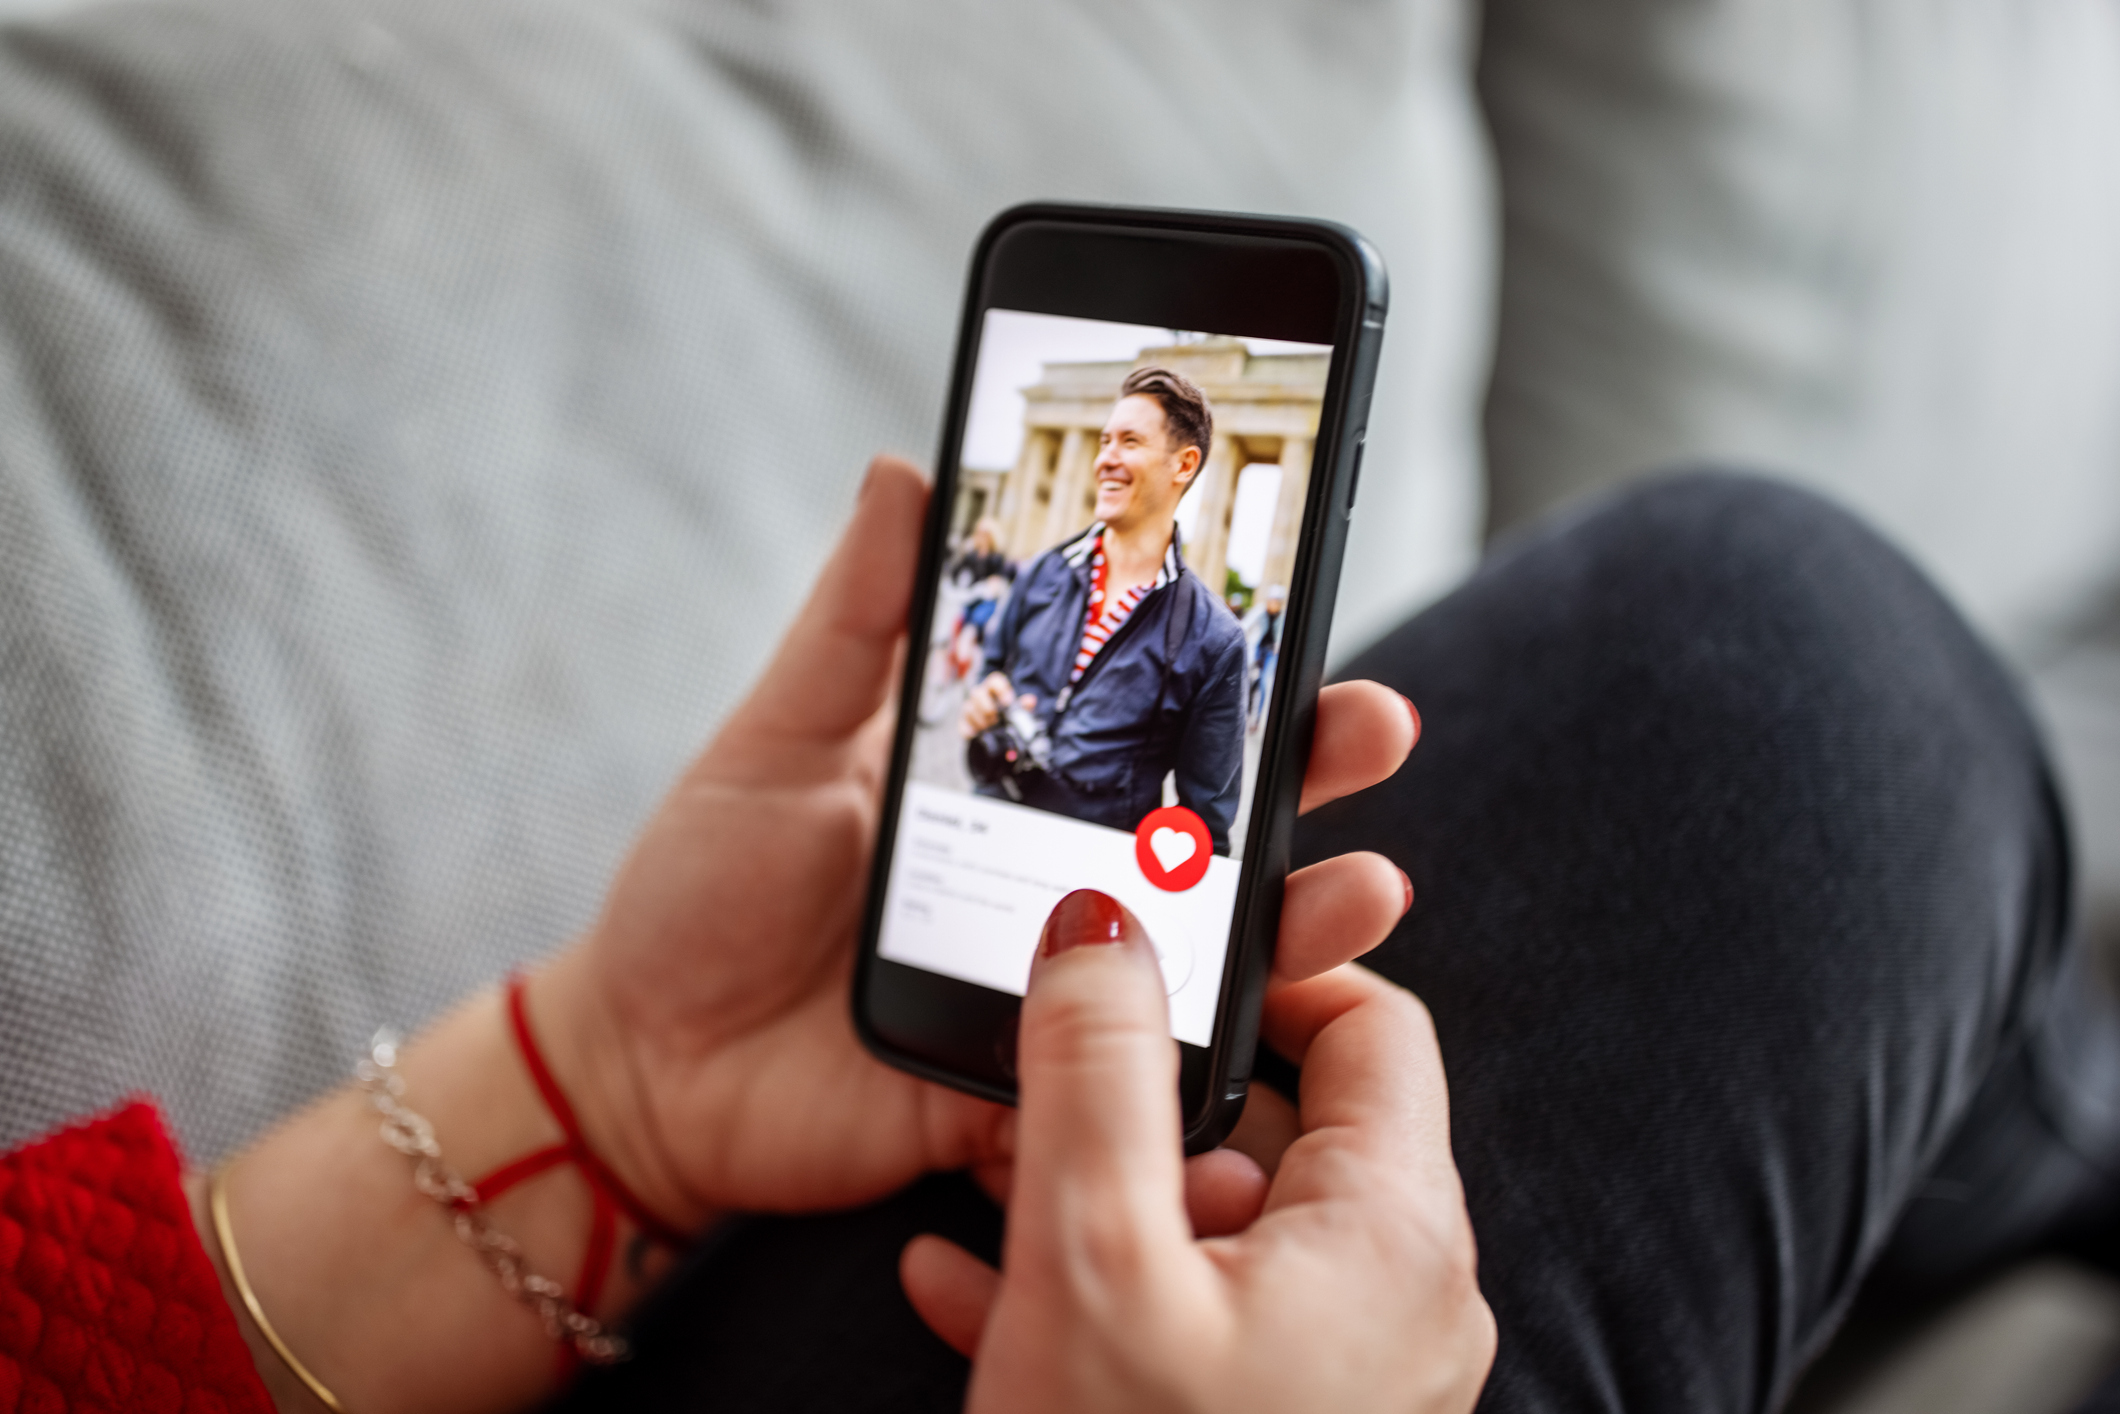 Hands holding a phone displaying a picture of a person in a dating app.